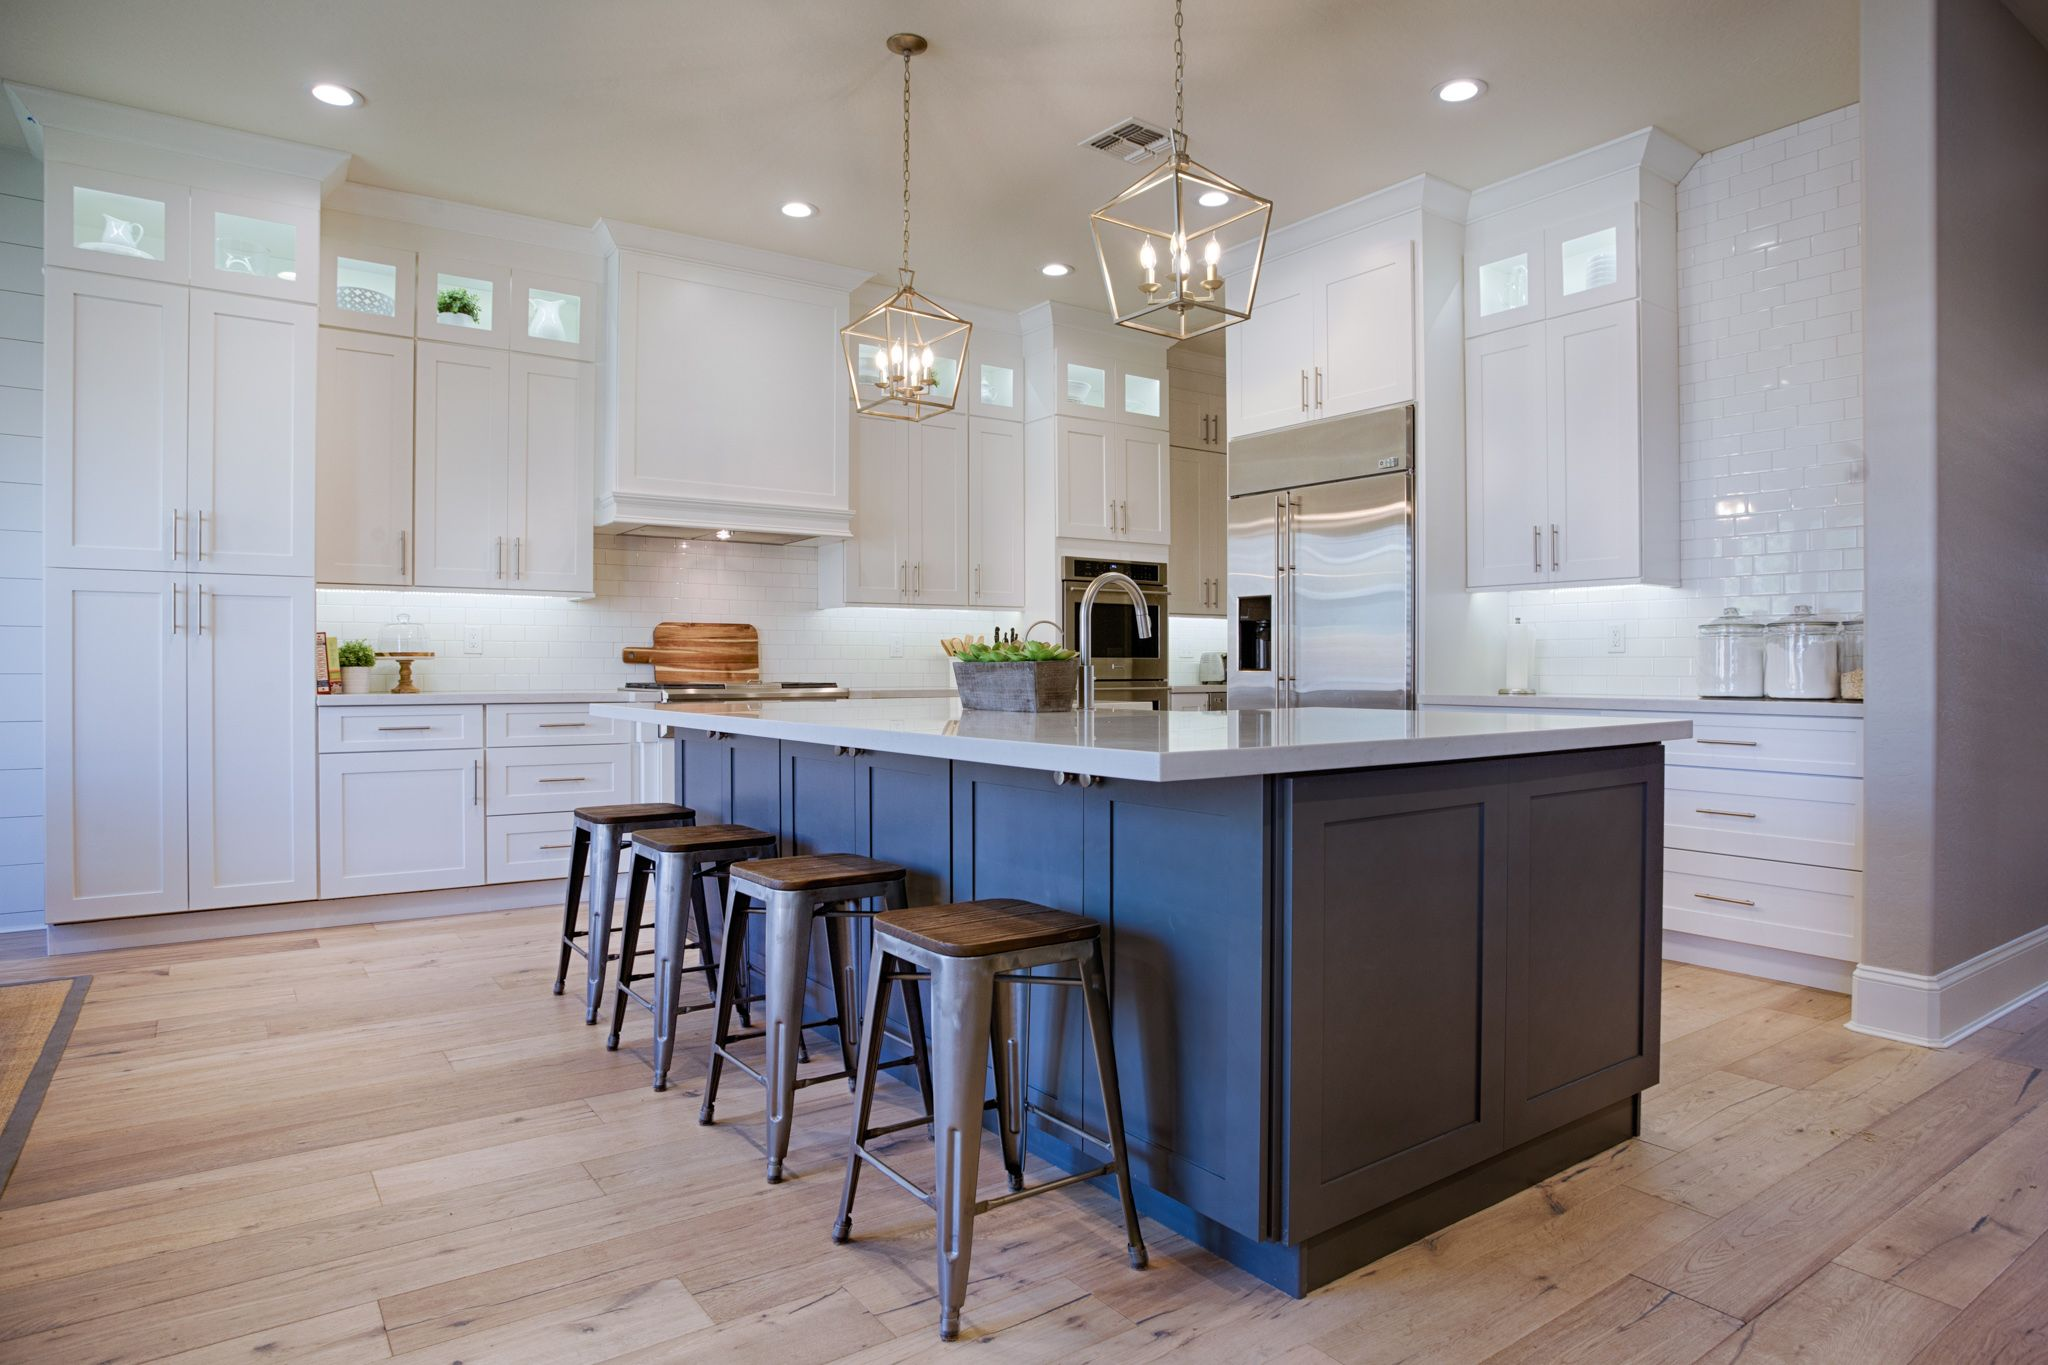 White Newport Shaker Kitchen Cabinets In Frost Paint With A Custom